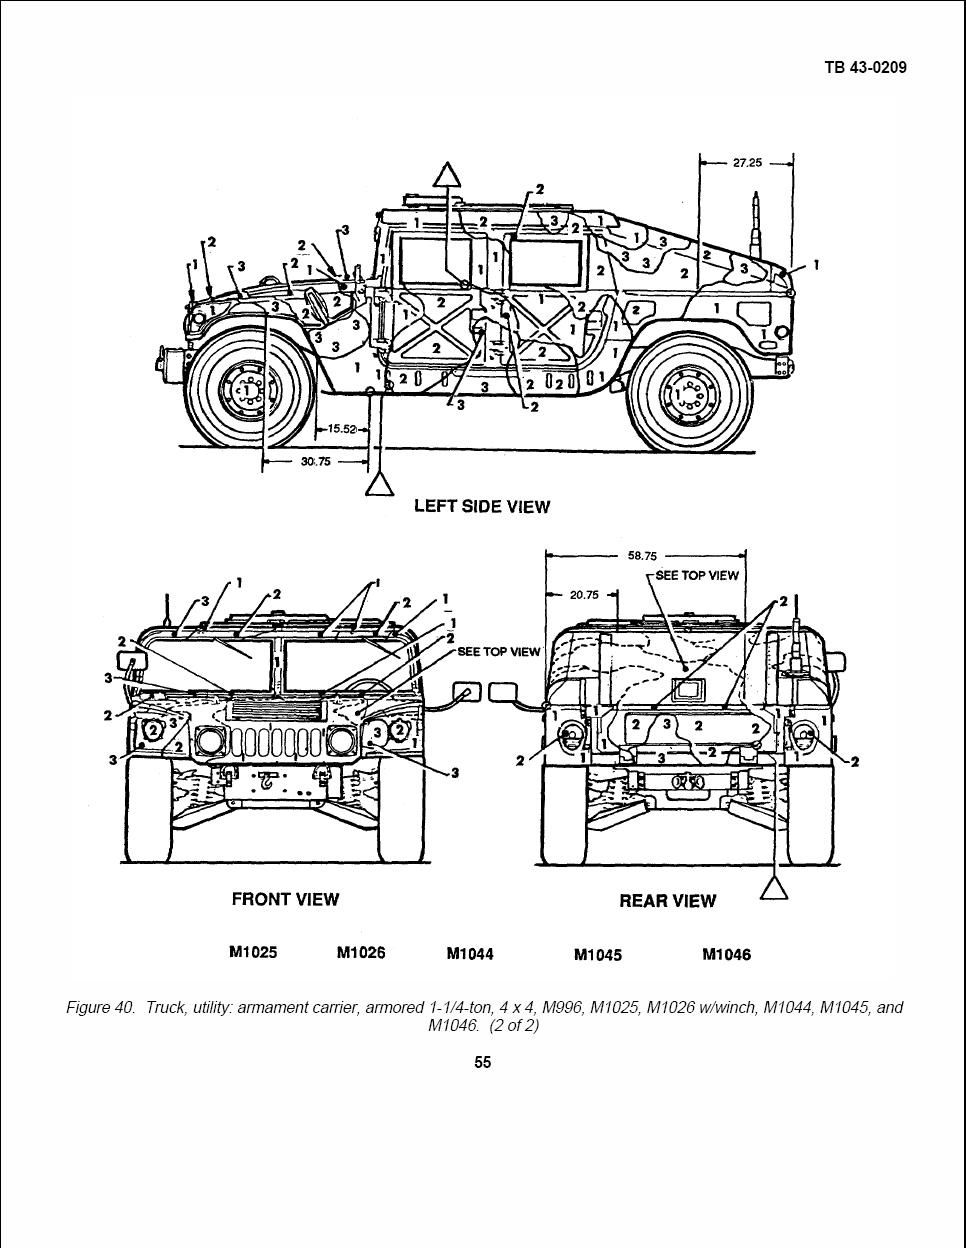 Mrap Wiring Diagram Cougar Wiring Diagram Wiring Diagram